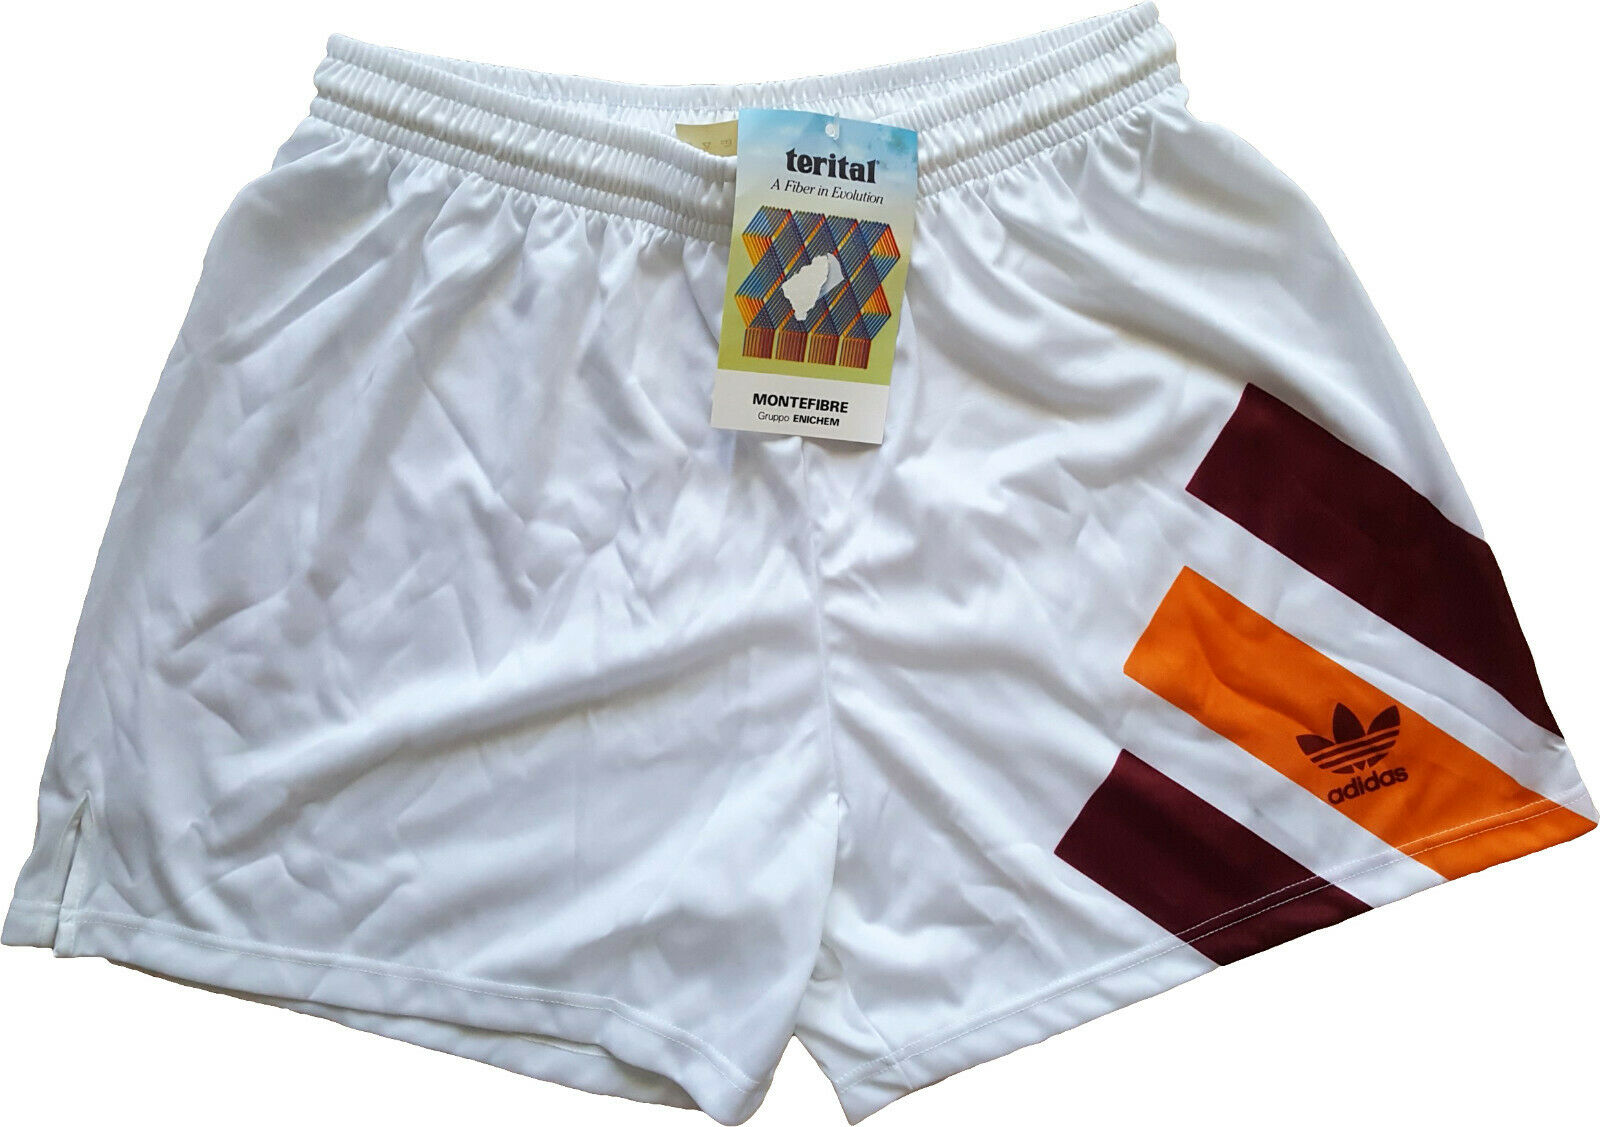 Adidas vintage roma shorts player issue 1993 1994 player issue nuovo away